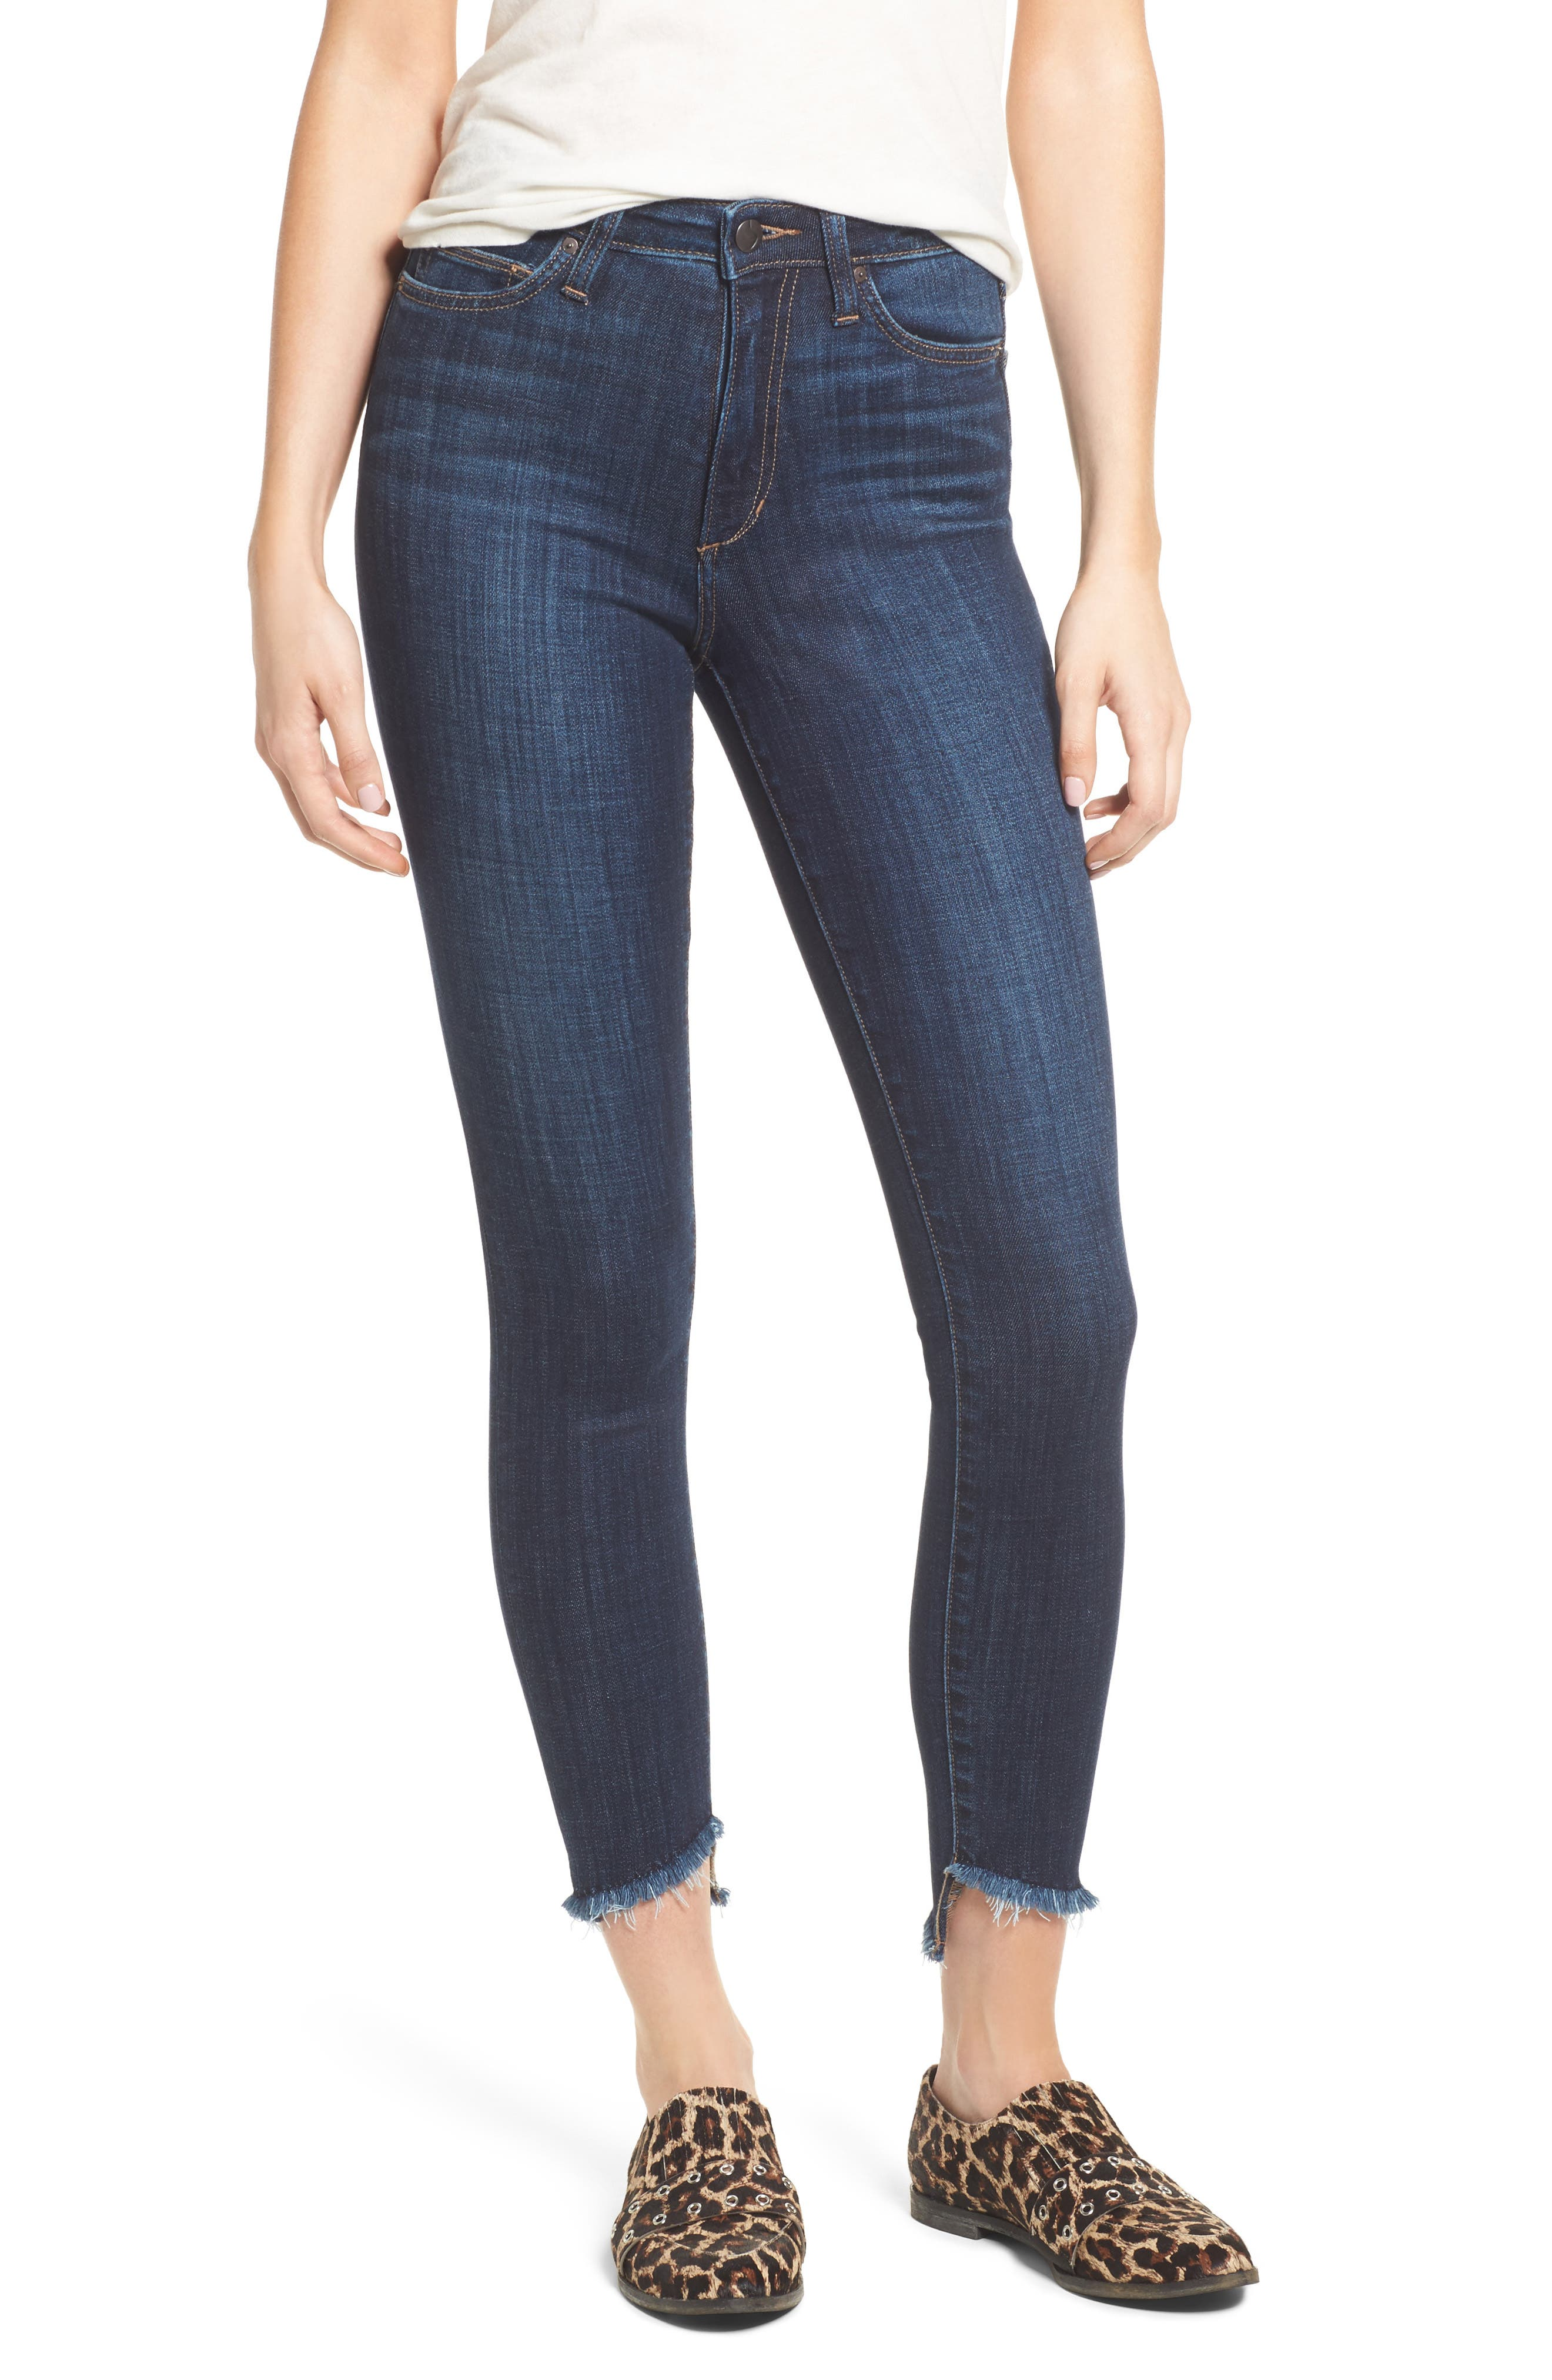 Charlies Blondie Hem Jeans,                             Main thumbnail 1, color,                             Marquita